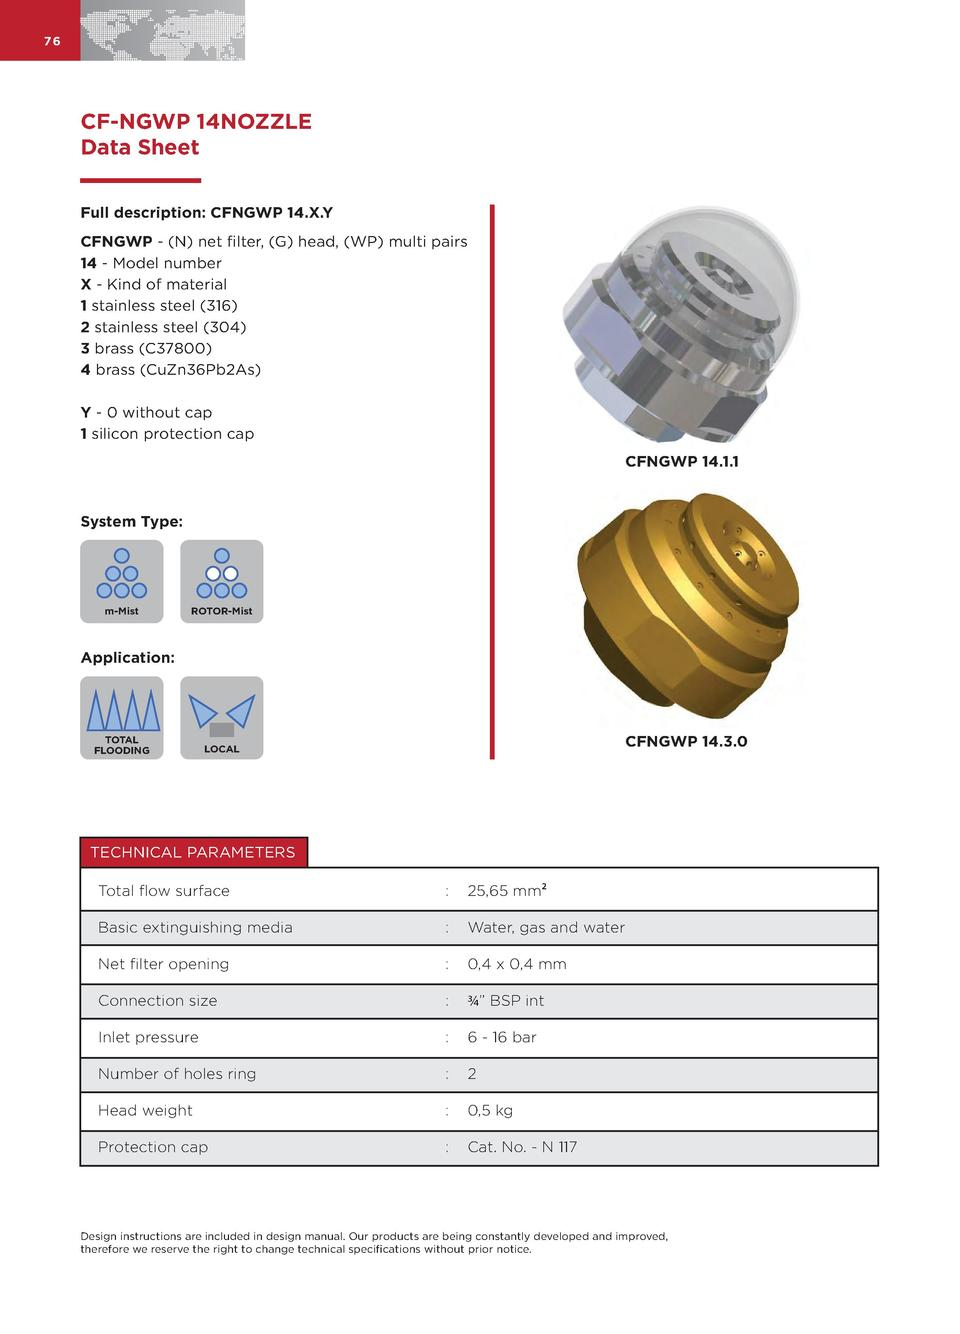 76  CF-NGWP 14NOZZLE Data Sheet Full description  CFNGWP 14.X.Y CFNGWP -  N  net filter,  G  head,  WP  multi pairs 14 - M...